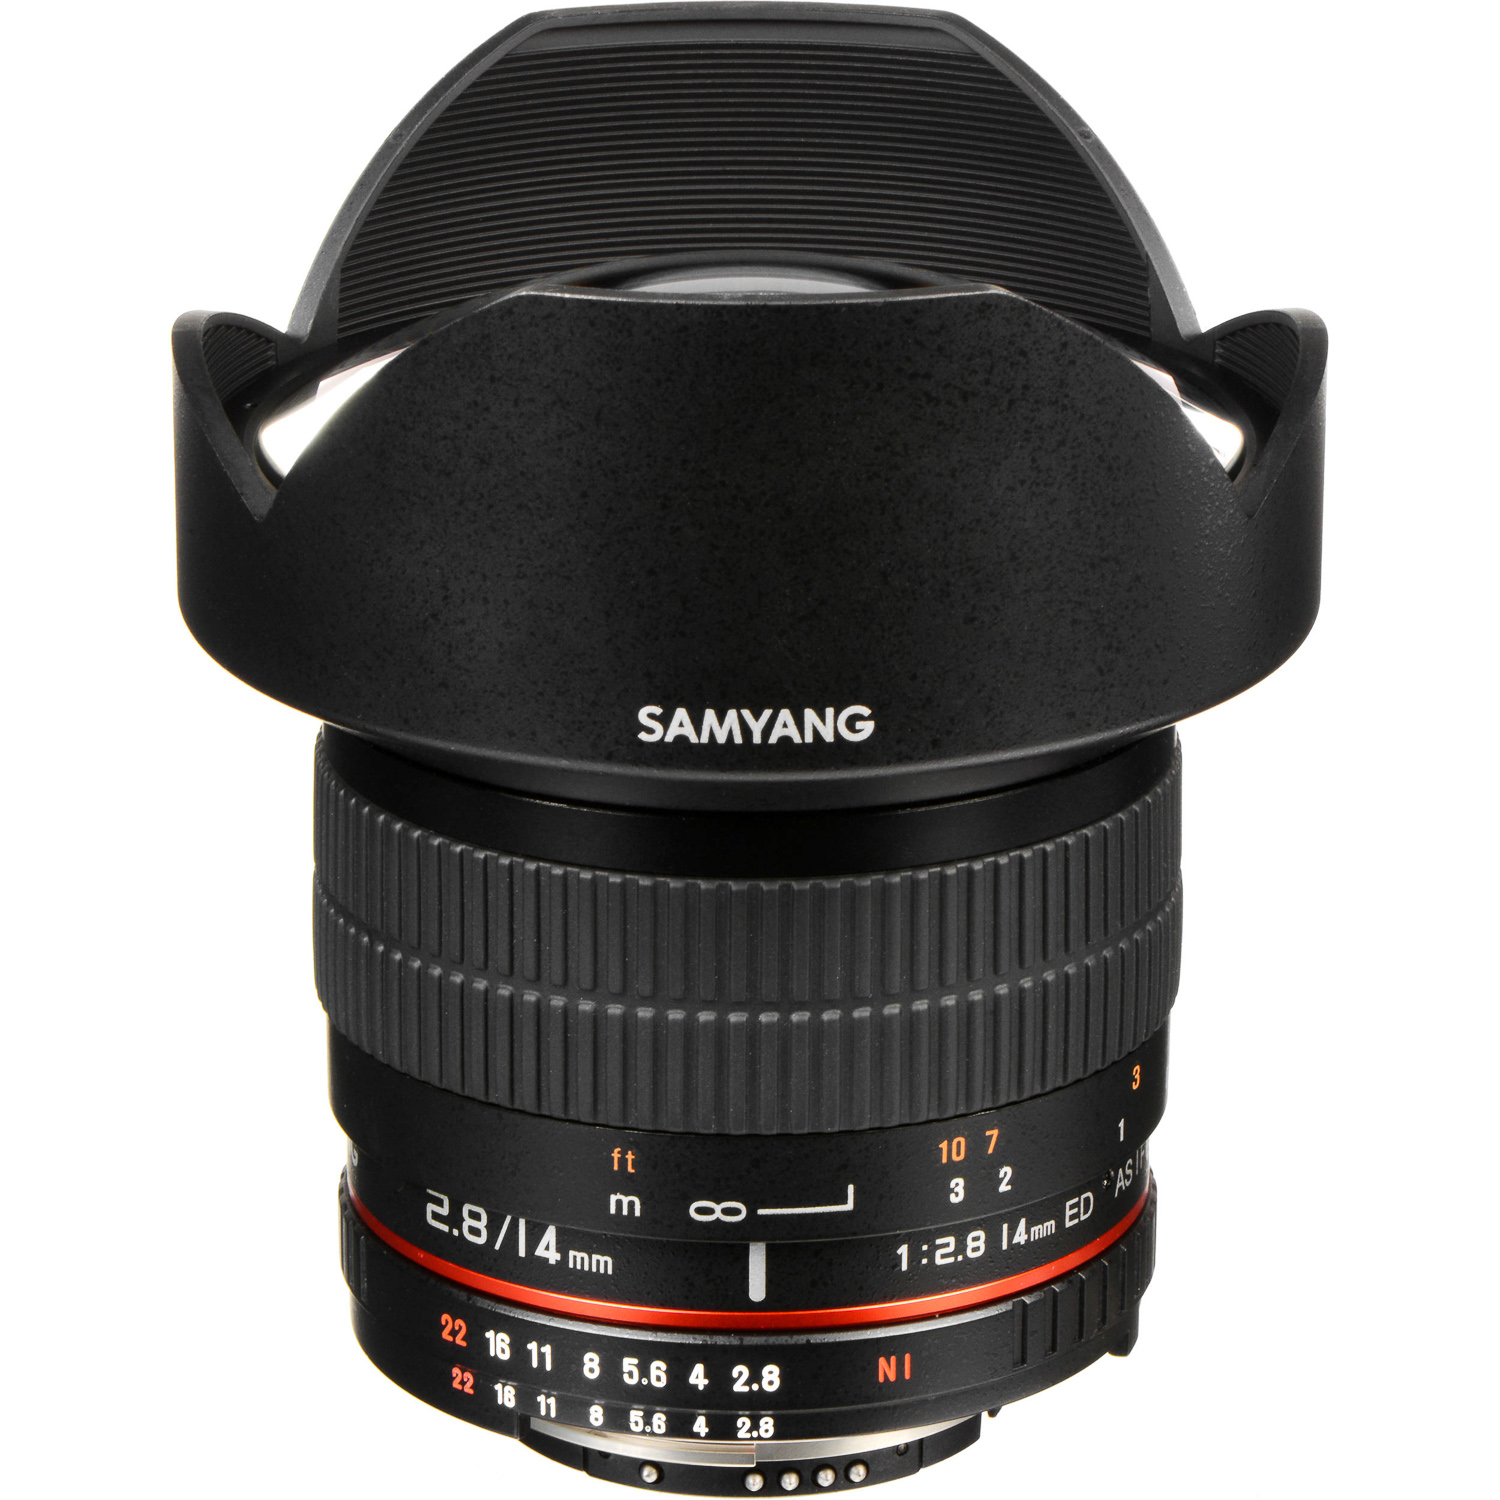 Samyang 14mm f/2.8 lens for astrophotography